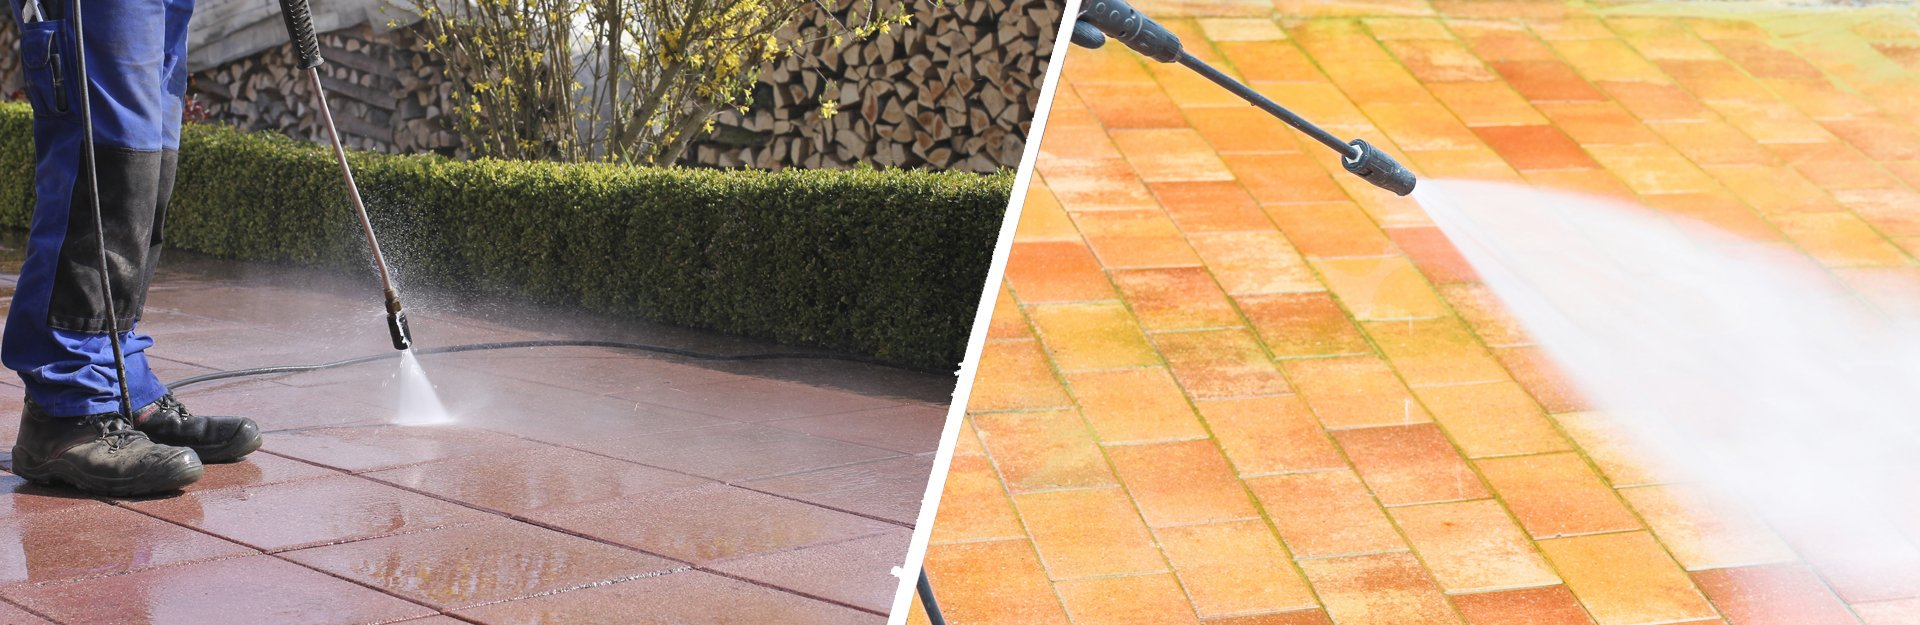 Patio Cleaning Poole Bournemouth Repointing Amp Sealing